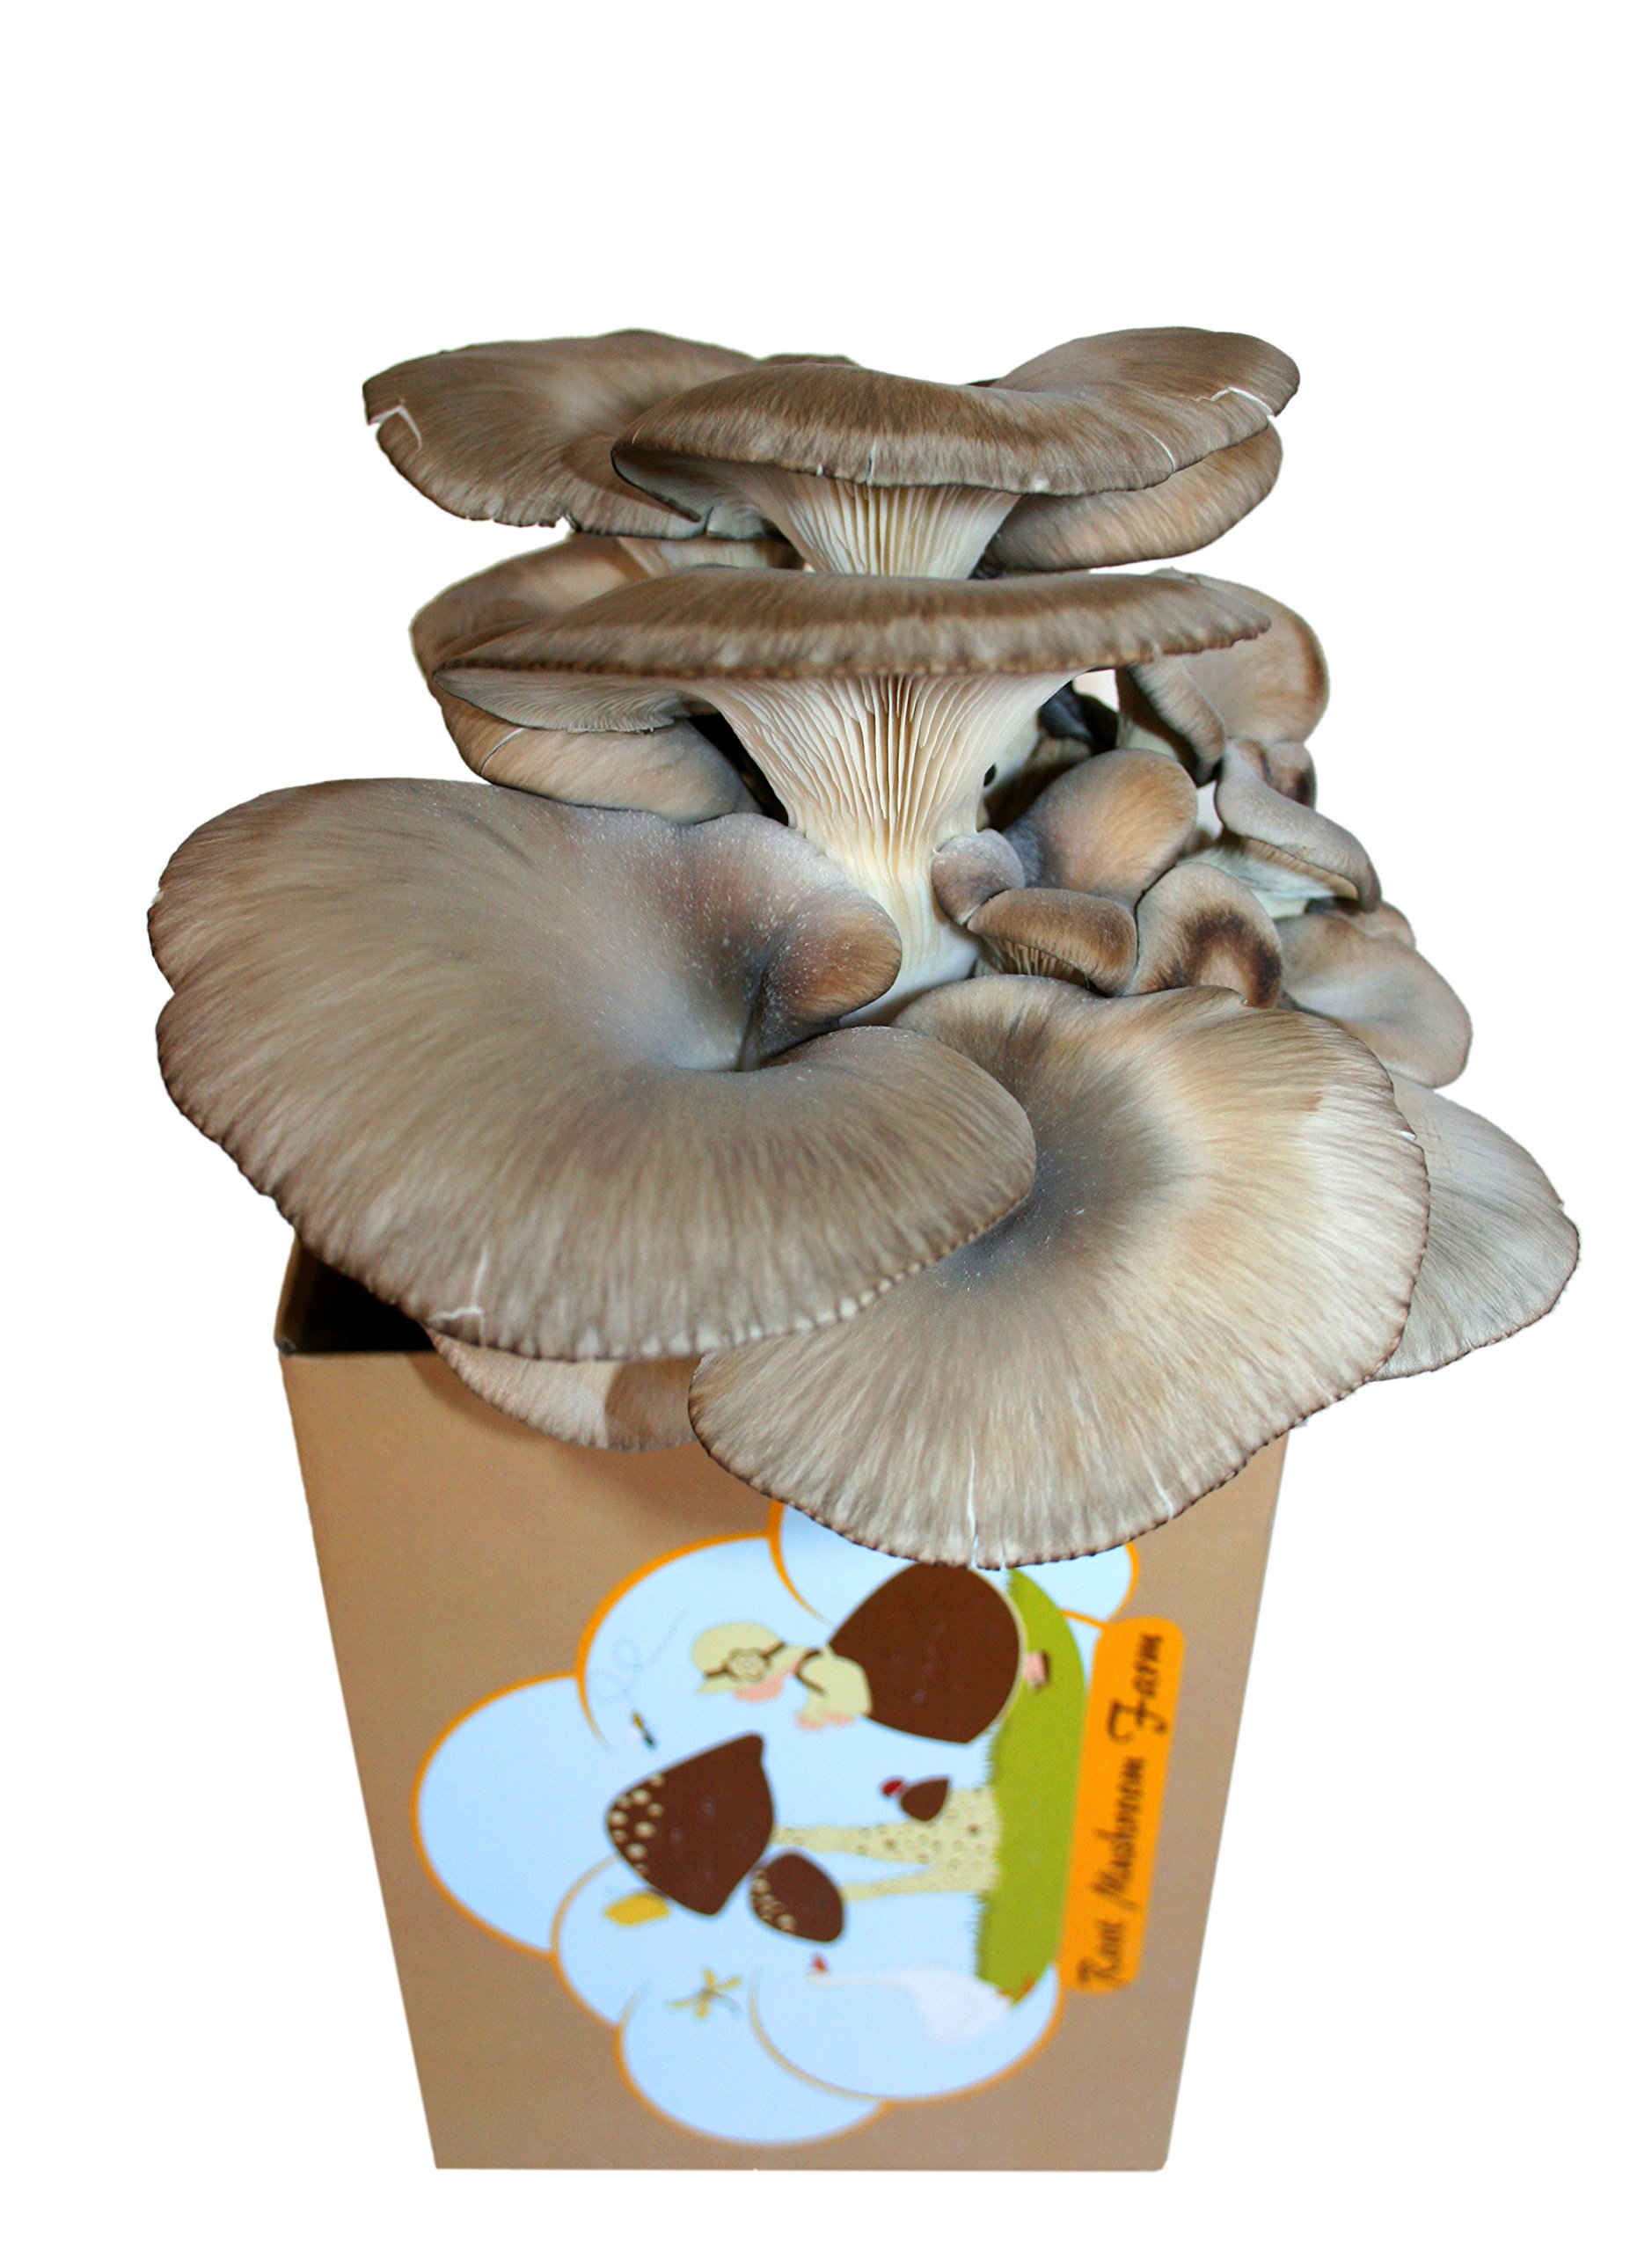 Root Mushroom Farm—Oyster Mushroom Growing Kit-3 pound log